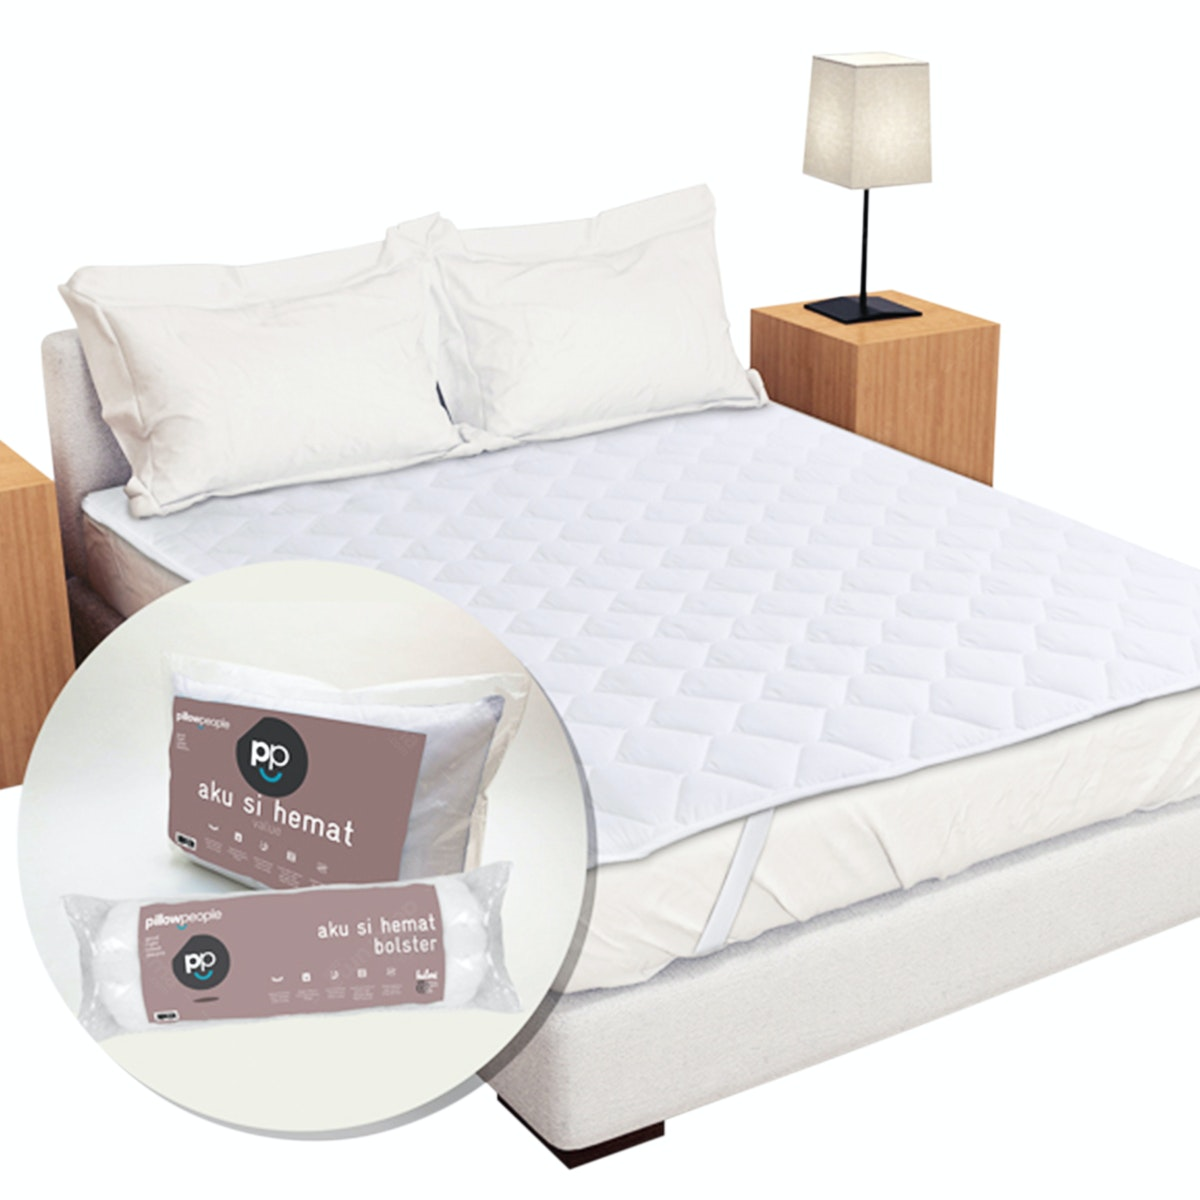 Pillow People Paket Protector 3 in 1 - Matras Protector 160 + Pillow Protector + Bolster Protector